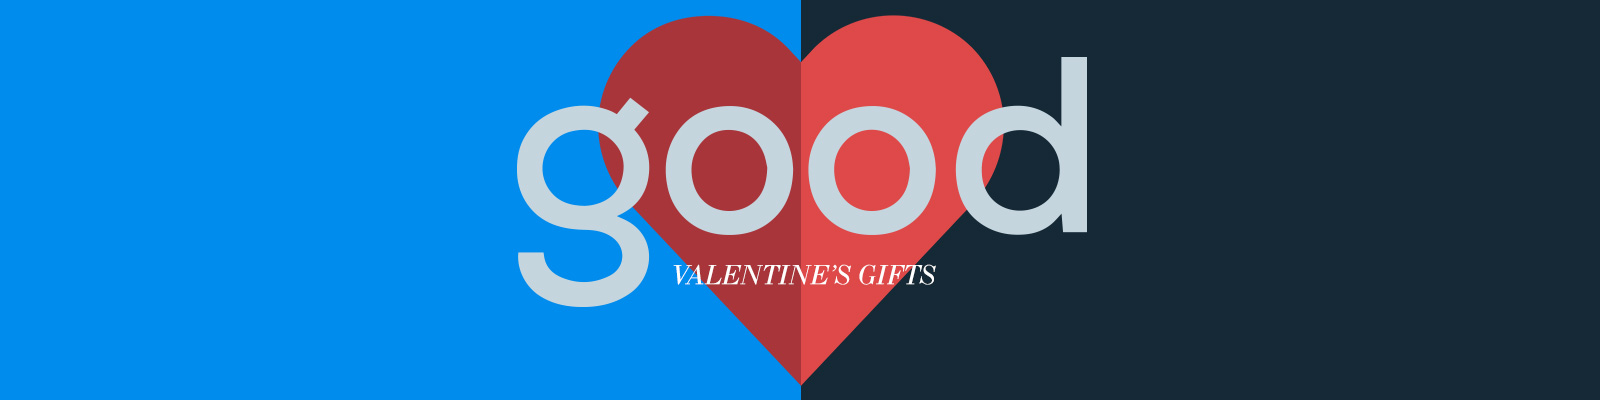 good valentines day gifts that give back